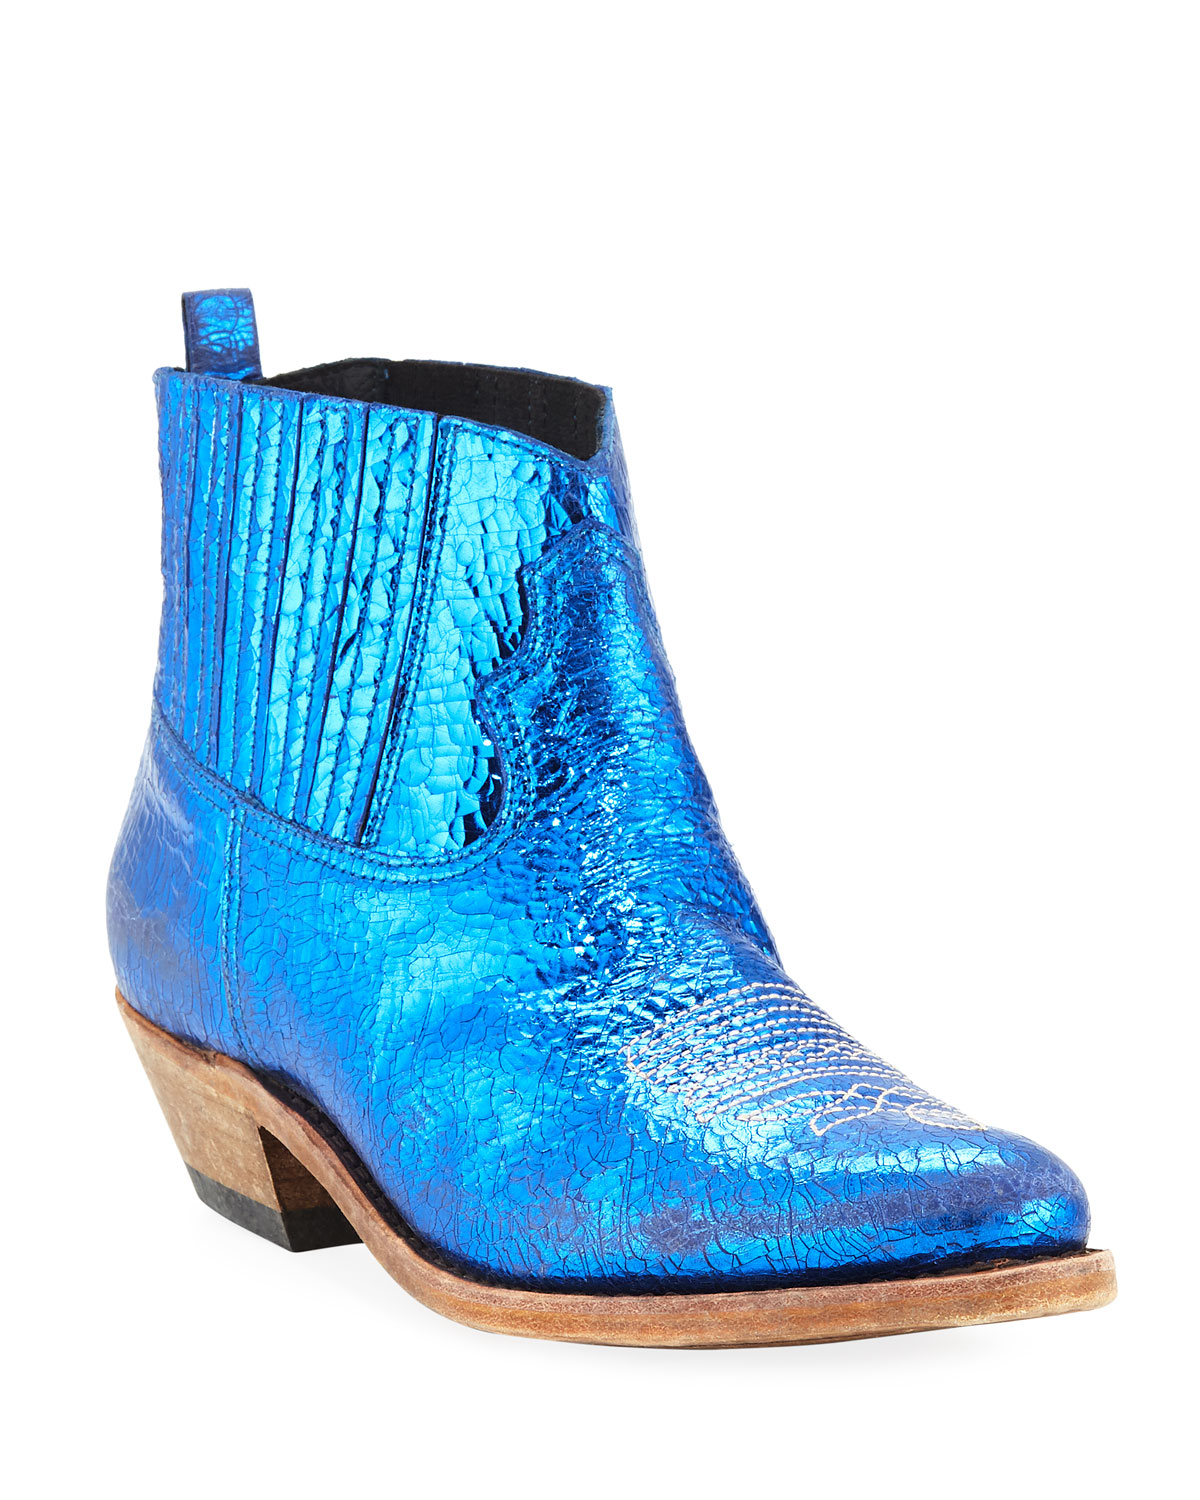 102a6a58598 Crosby Crackled Metallic Leather Western Boots